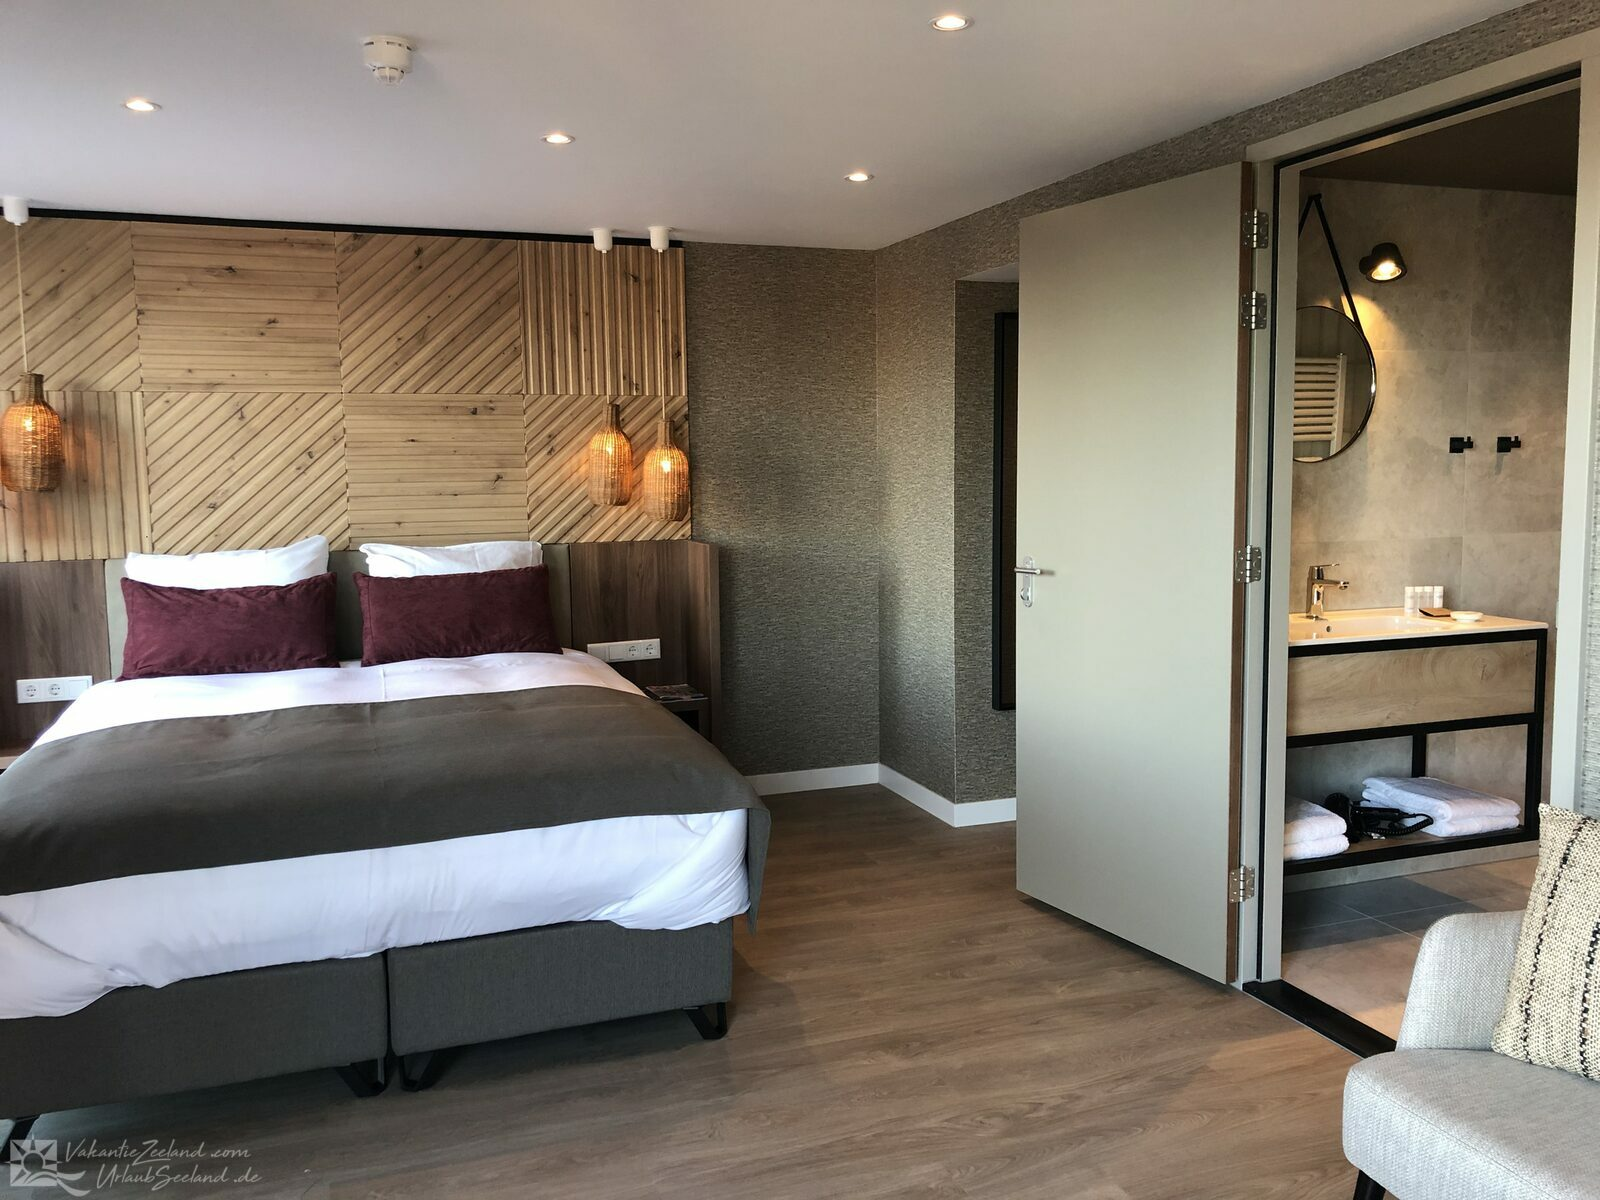 VZ913 Junior Suite in Vlissingen